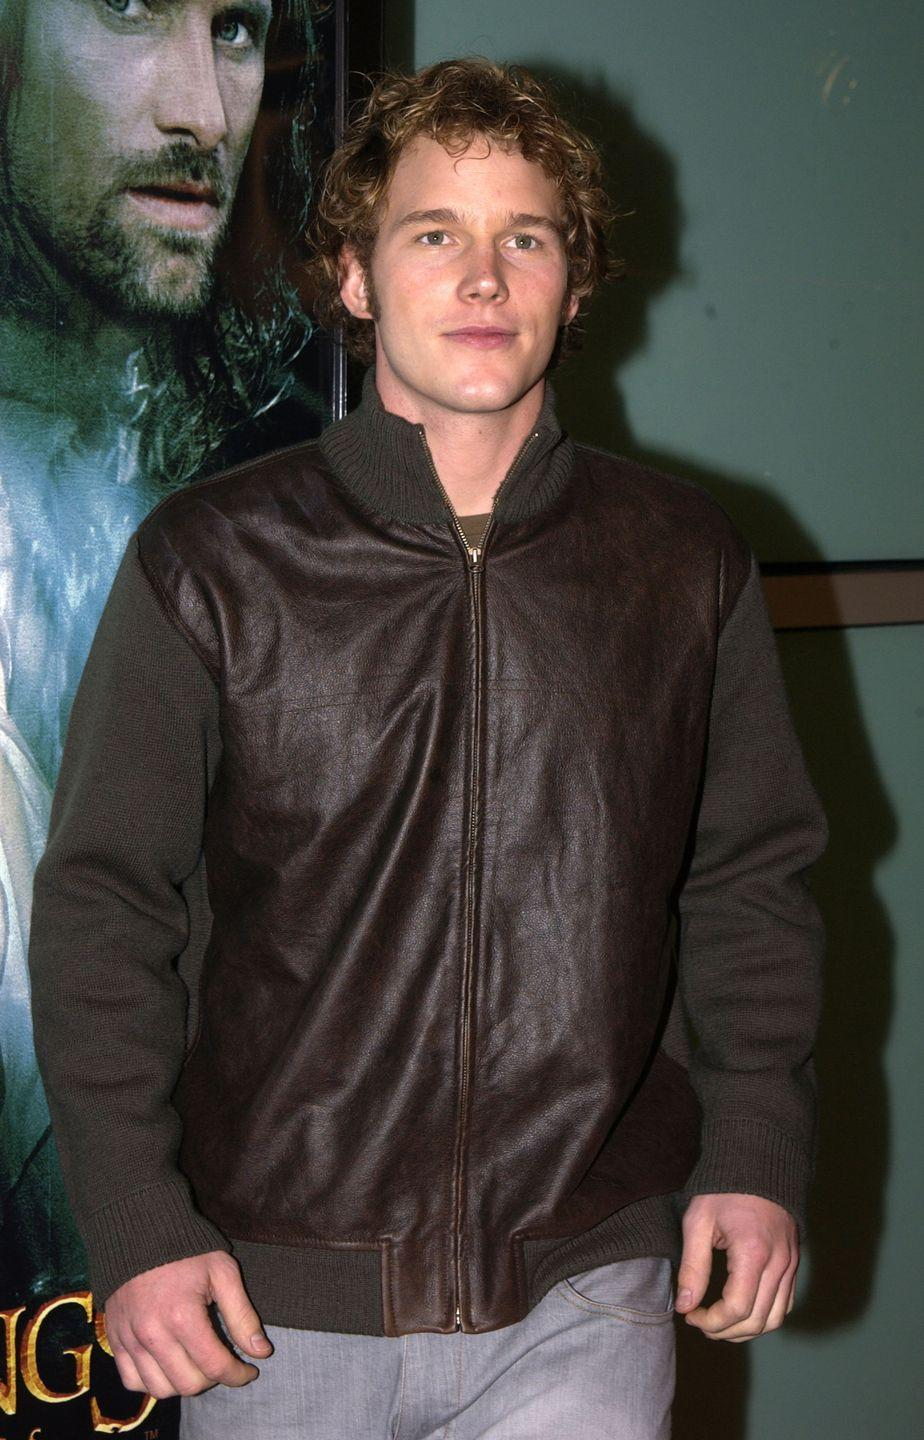 <p>In the early 2000s, Chris Pratt was known only as one of the stars of the short-lived series <em>Everwood</em>. He went on to play goofy but lovable Andy Dwyer on <em>Parks and Recreation</em>, and was basically known as a sweet and funny, but geeky, actor. </p>